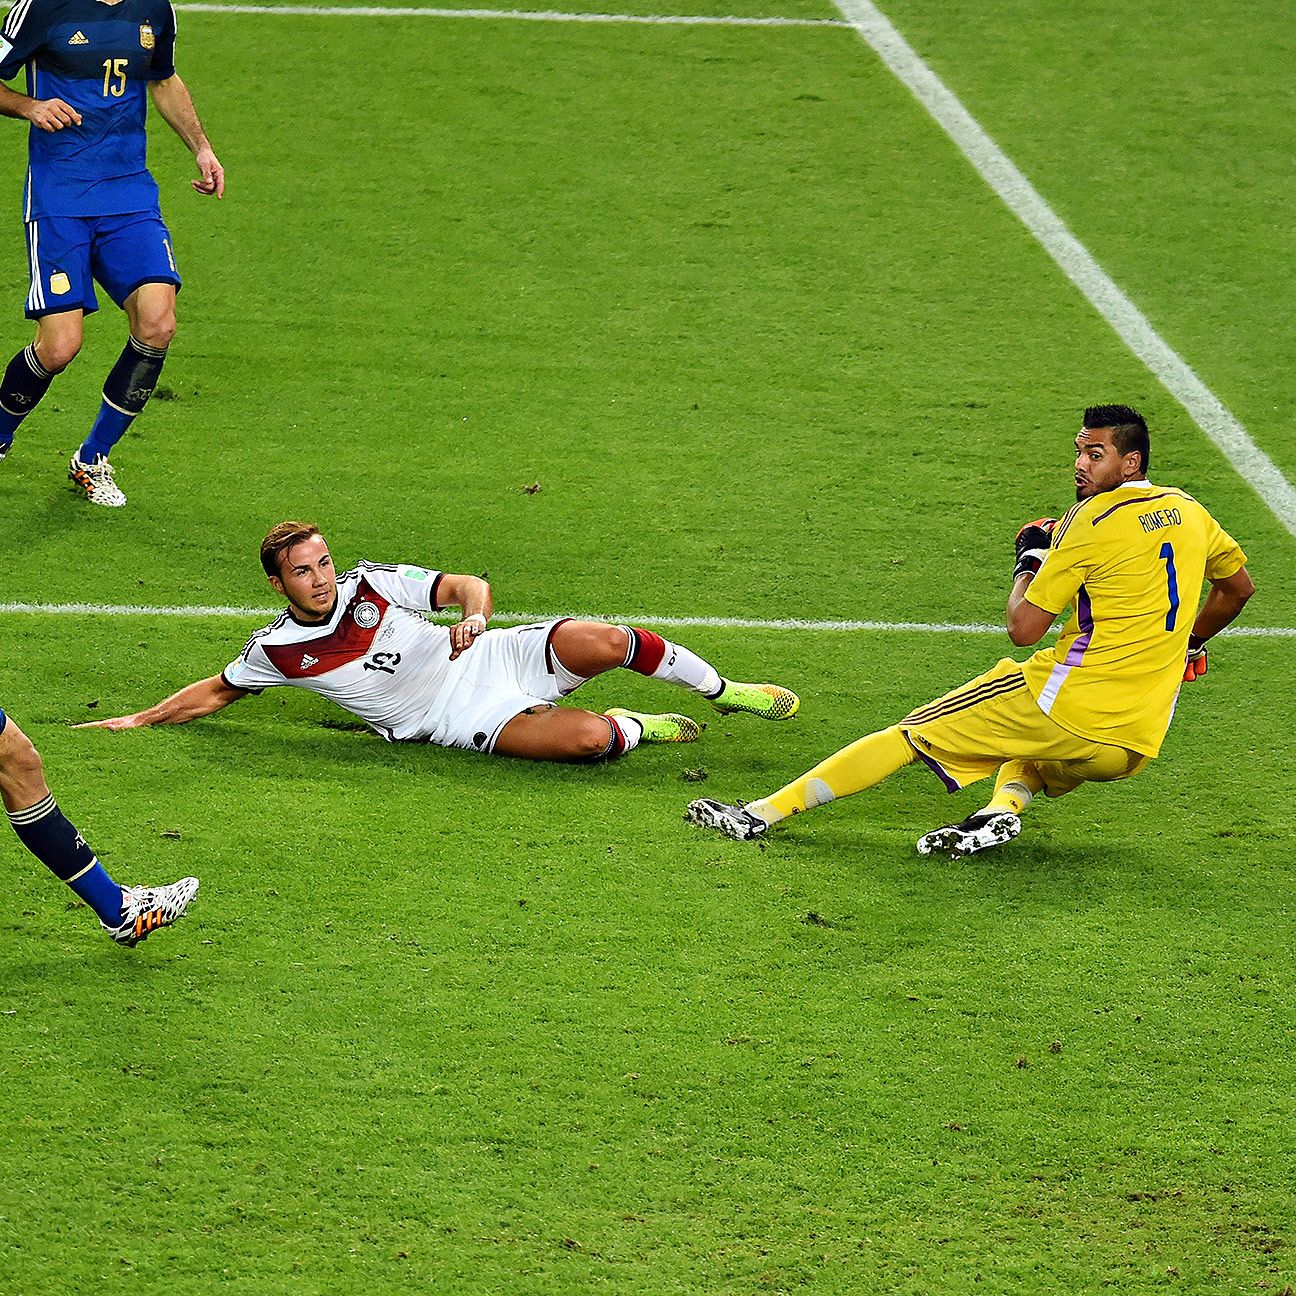 After a tense, agonizing World Cup final, Gotze's goal vs. Argentina was worth the wait.